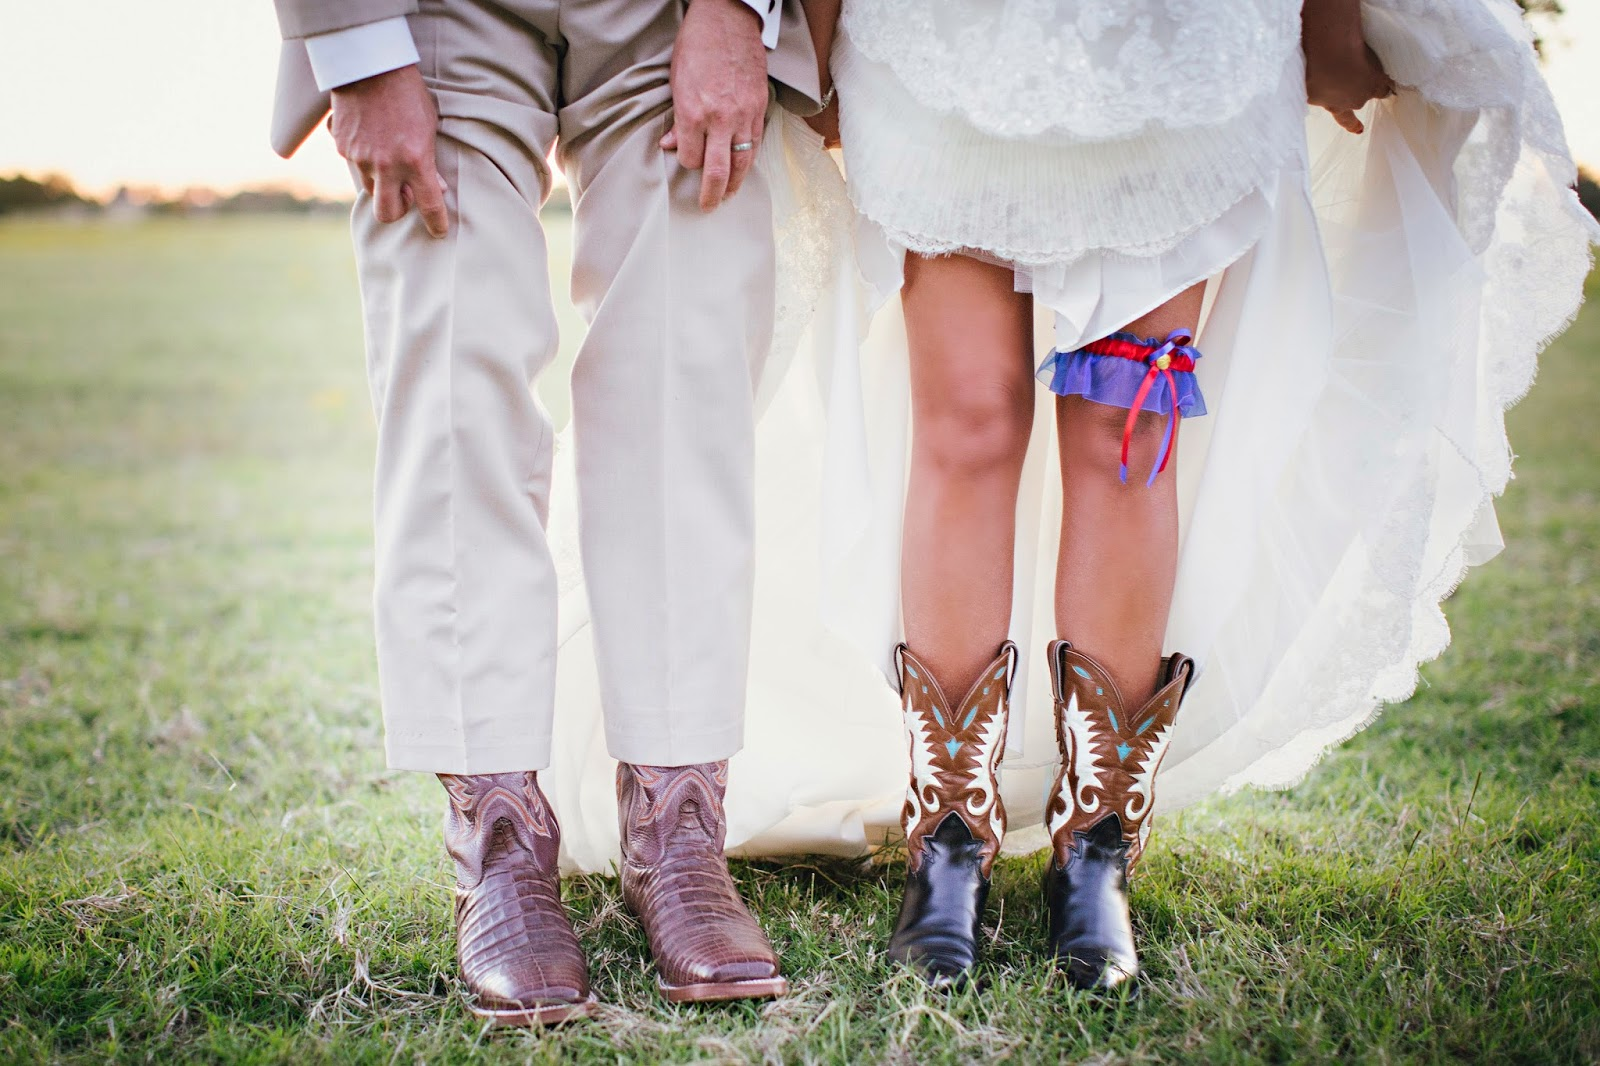 Granddad's Cowboy Boots, Wedding Tradition